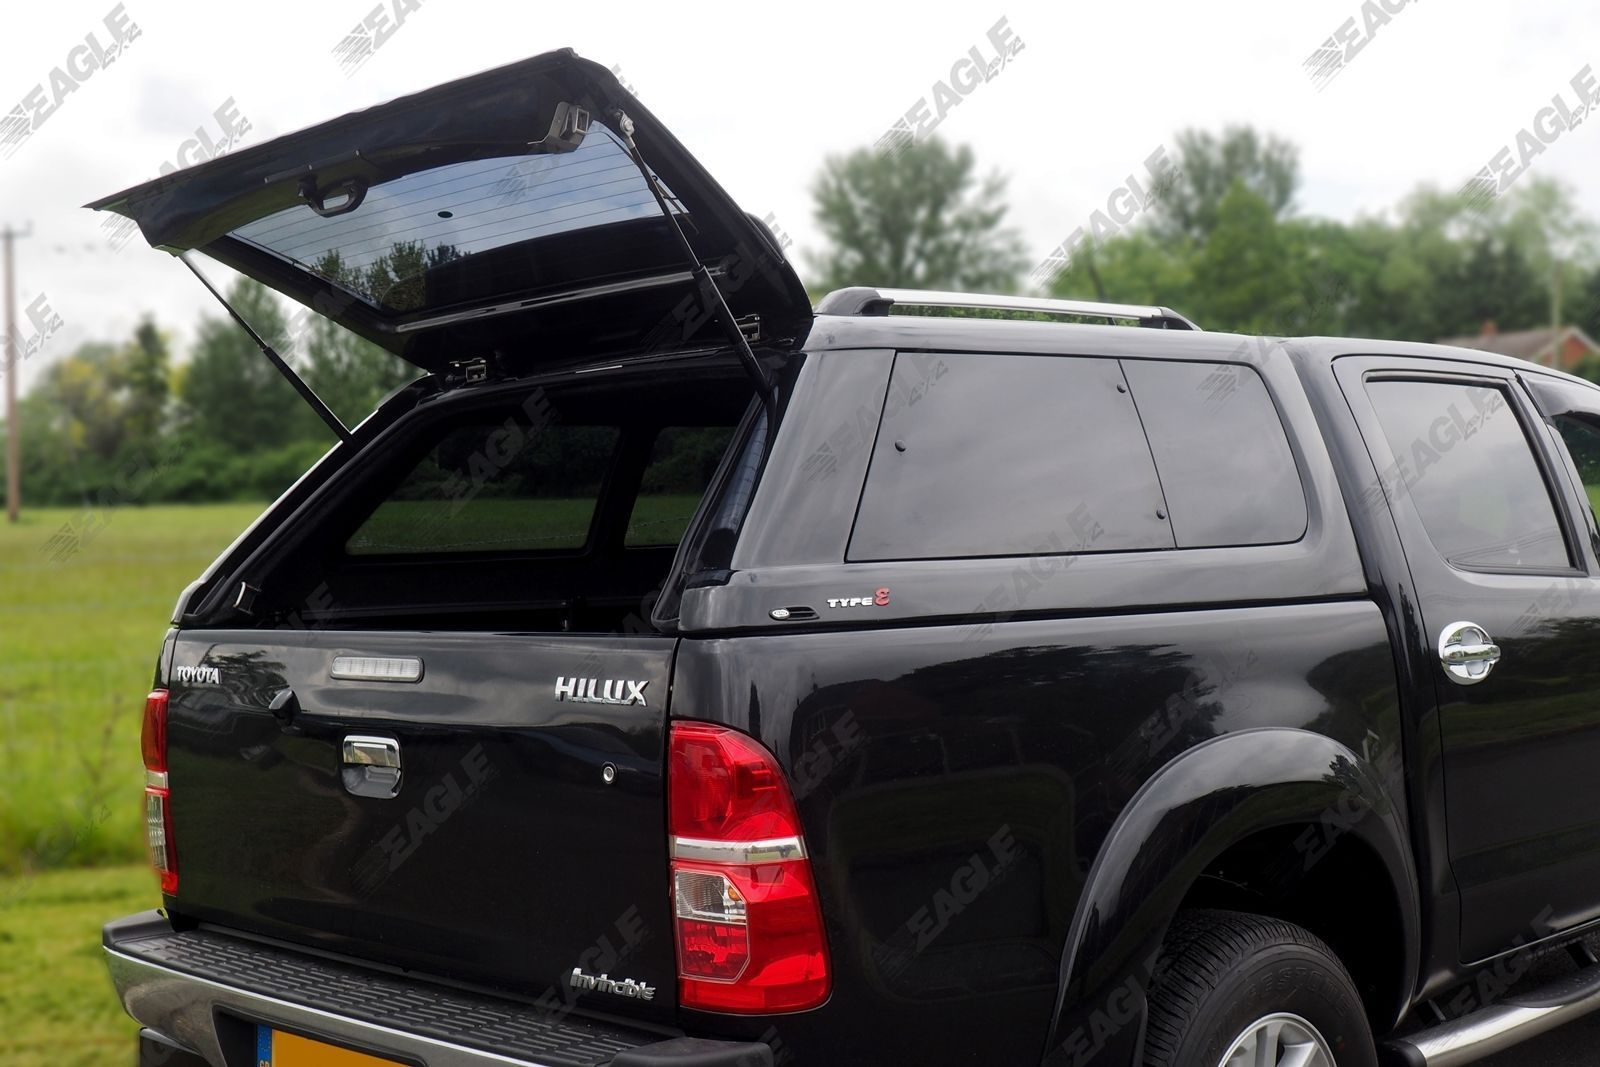 Sentinel Toyota Hilux Hardtop Canopy